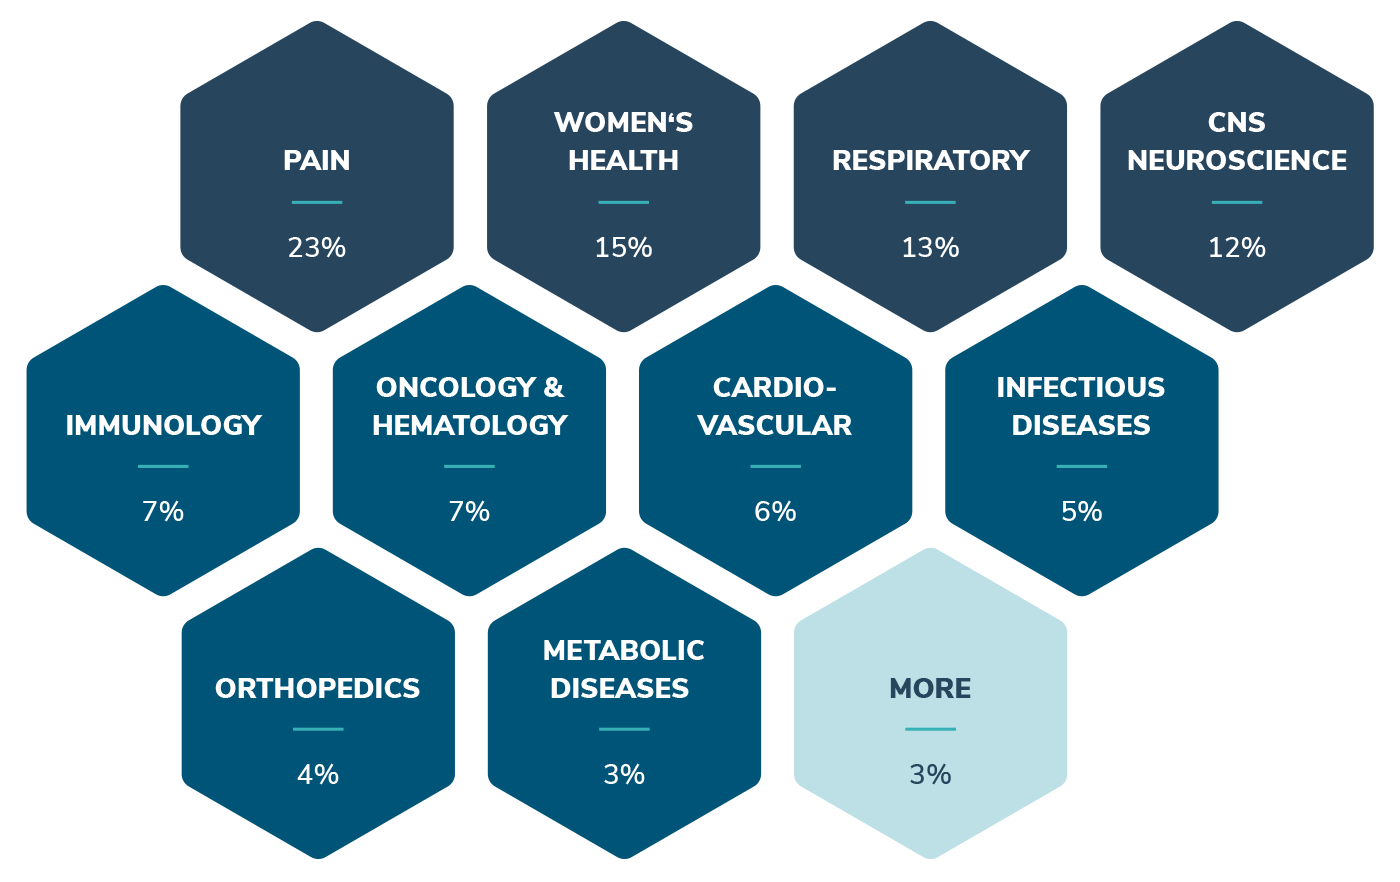 scope graphic main therapeuthic areas: pain, women's health, respiratory, CNS Neuroscience, Immunology, Oncology, hemathology, cardiovascular, Infectious diseases, Orthopedics, Metabolic diseases